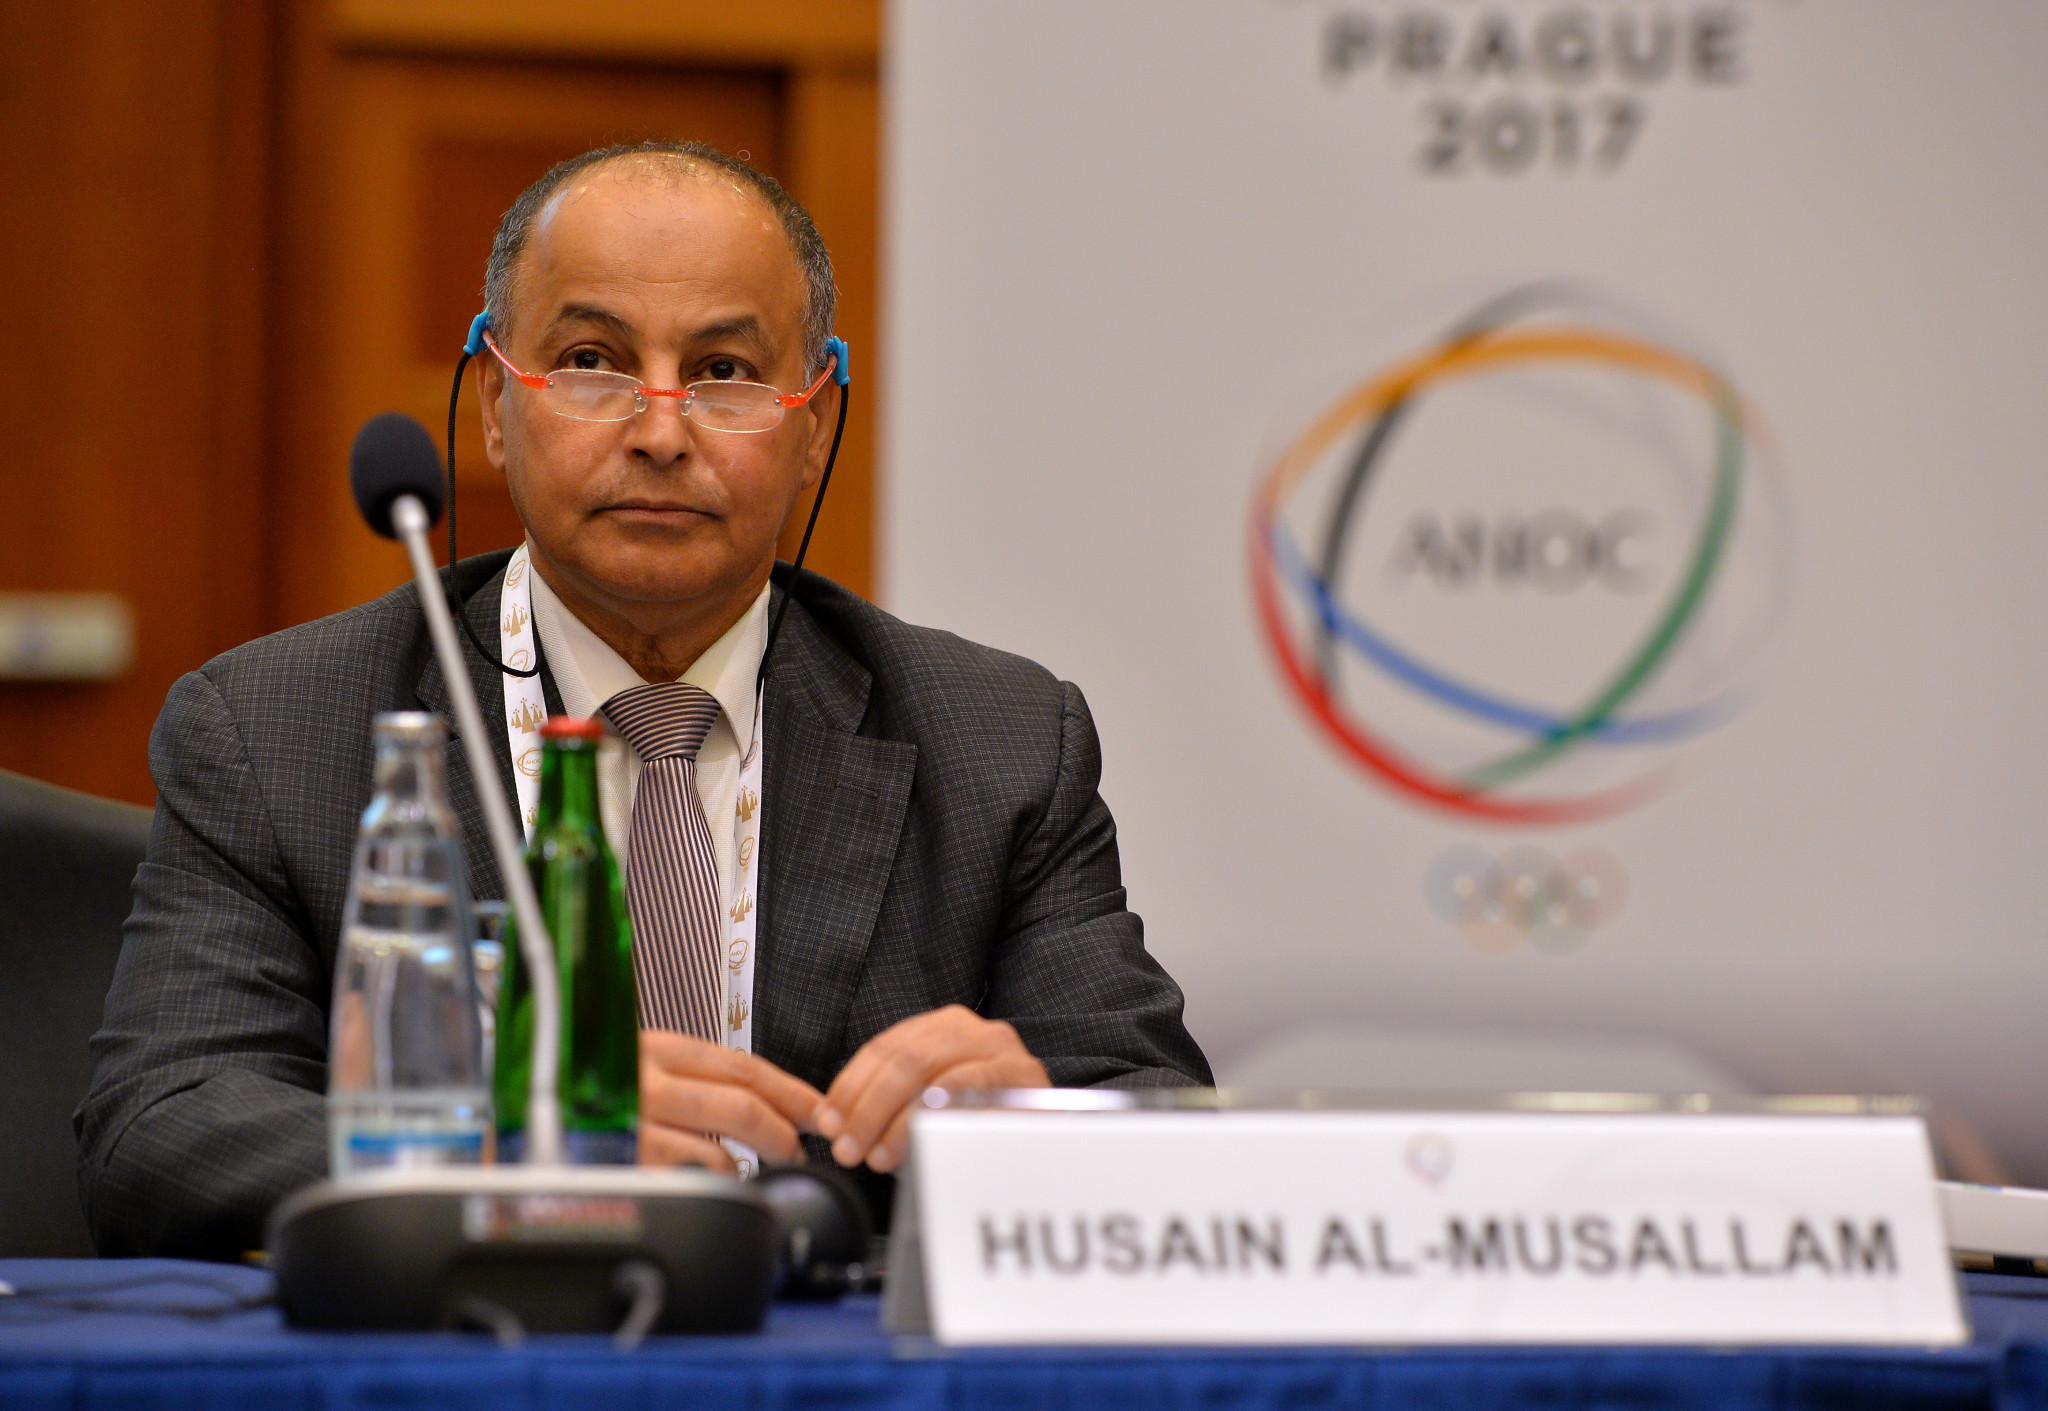 International Swimming Federation (FINA) President Al-Musallam started his tenure in June 2021 ©Getty Images